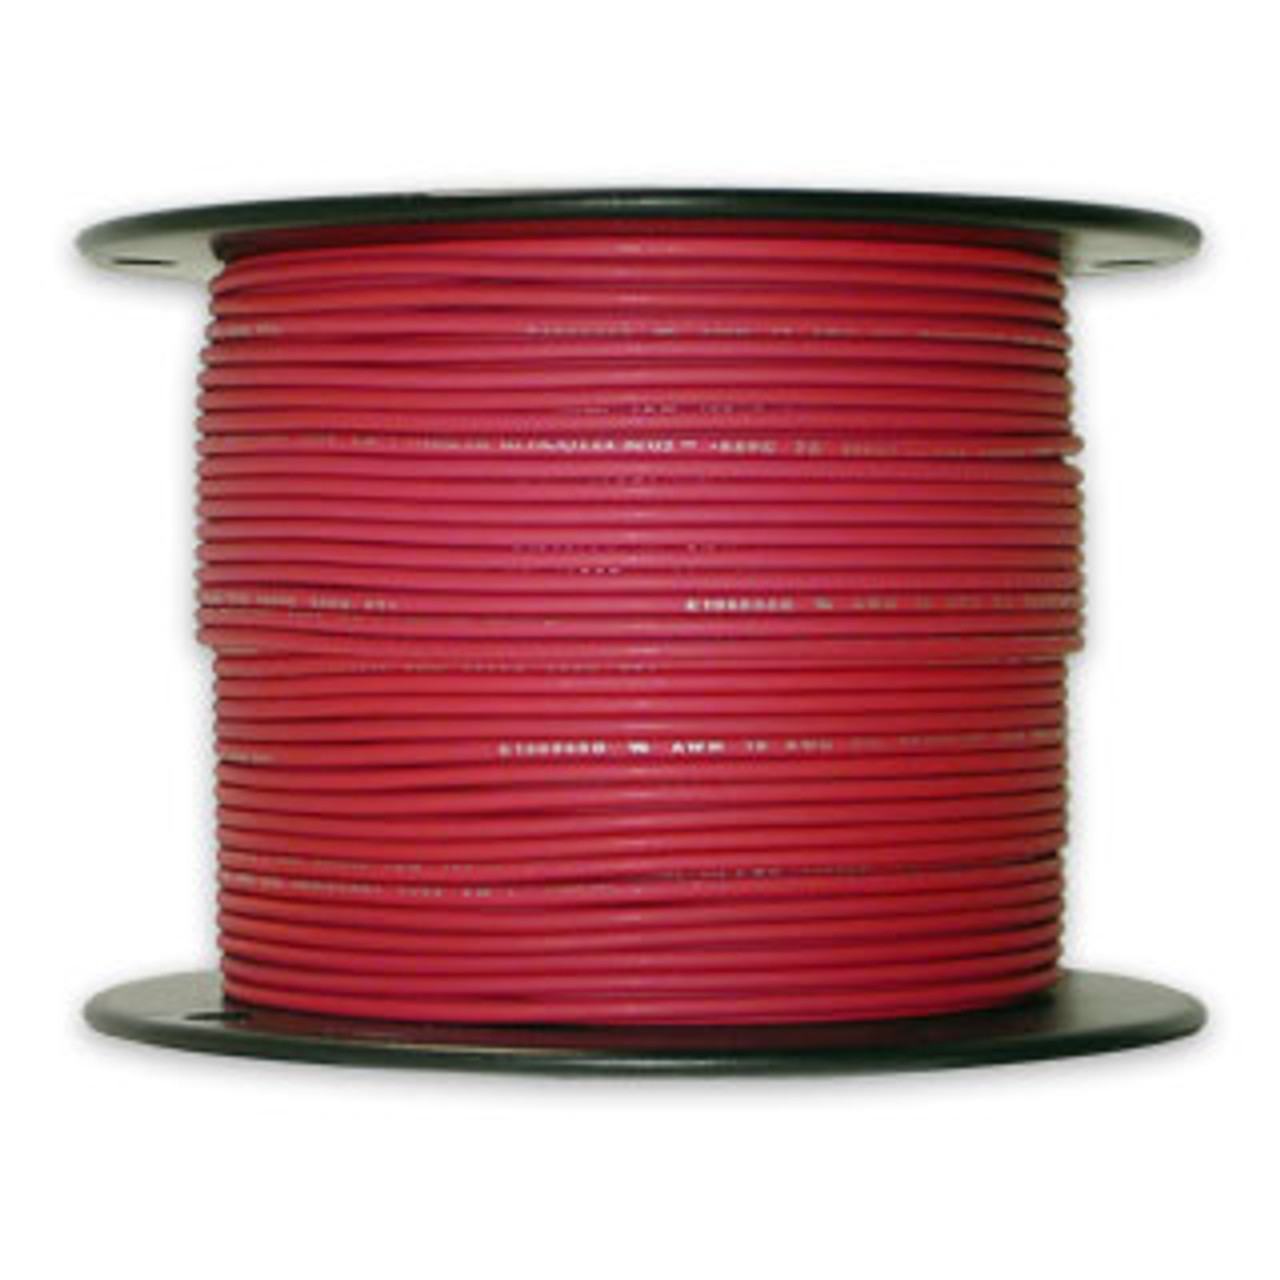 Arctic Ultraflex Cold Weather Flexible Wire 500 Foot Spool 14 AWG Red